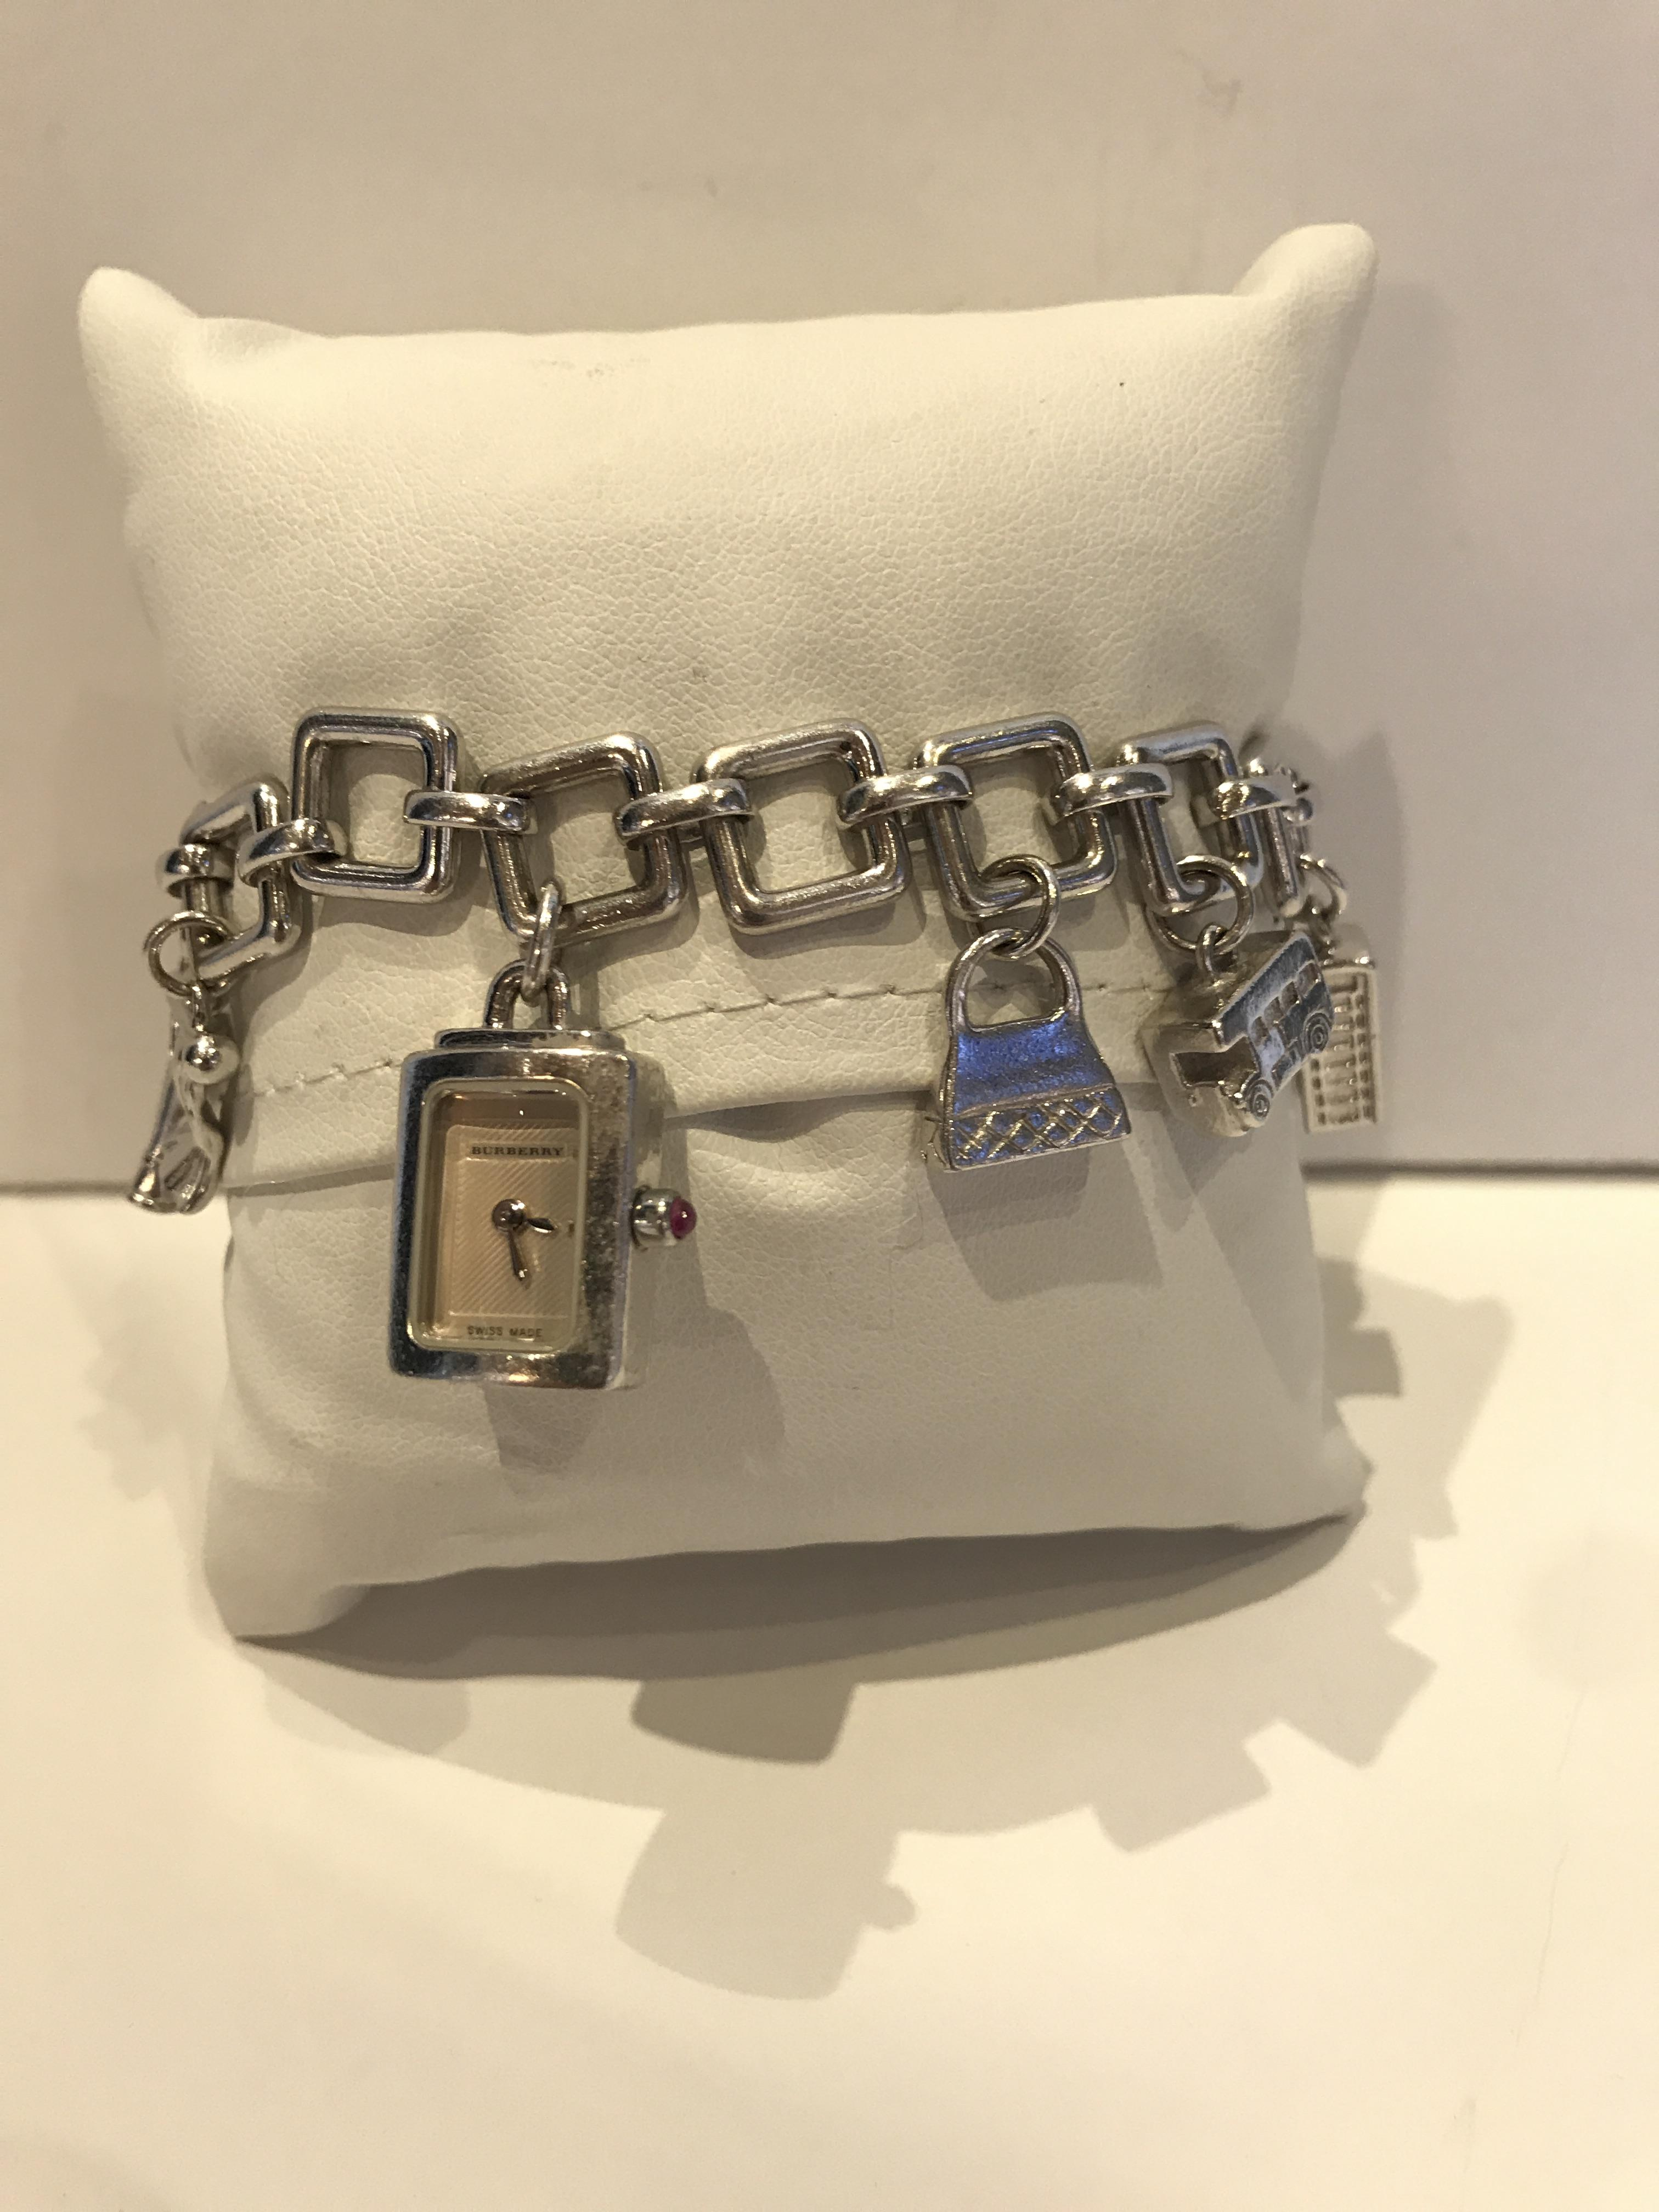 Burberry Bracelets Price: $198.99